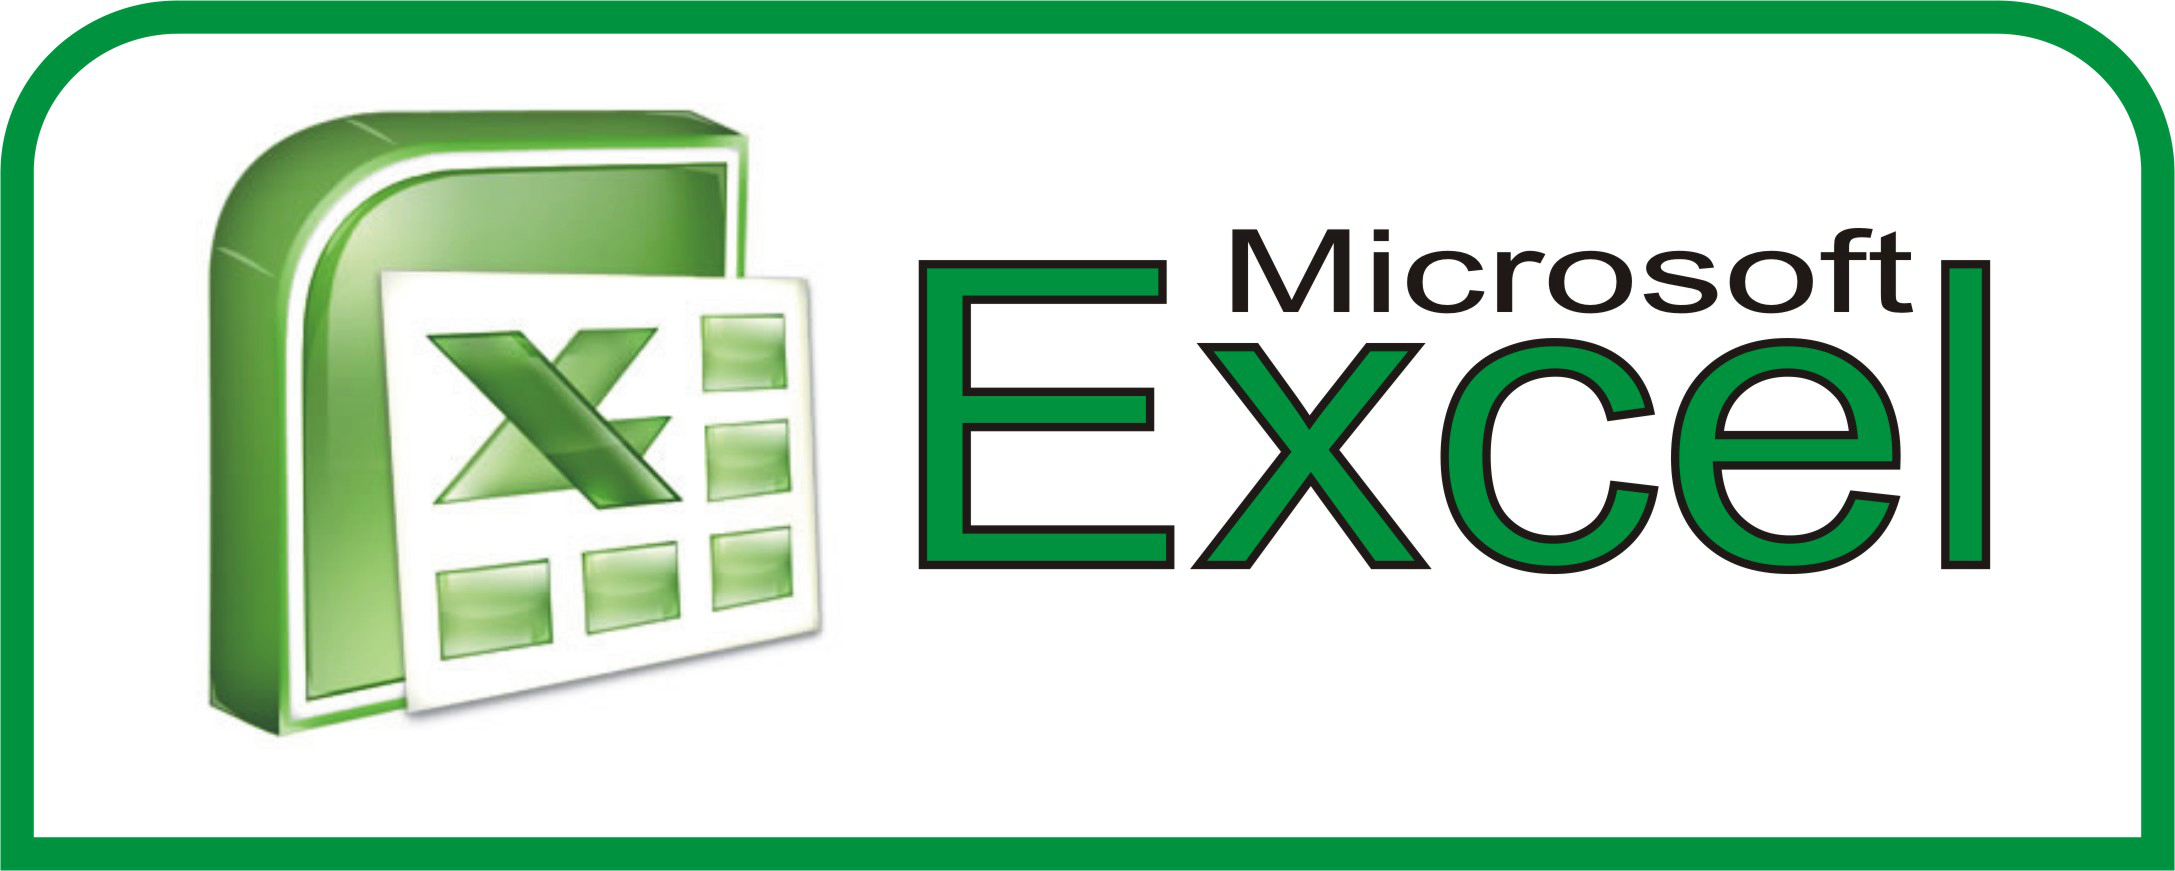 Ediblewildsus  Winsome  Excel Shortcuts You Probably Didnt Know About  Techdissected With Luxury Excel Duplicate Remover Besides How To Insert A Drop Down Box In Excel  Furthermore Roi Excel With Appealing Excel Contour Plot Also Analyzing Data In Excel In Addition Quartile In Excel And Excel Fix Row As Well As Excel Convert Time To Number Additionally Excel  Tutorial For Beginners From Techdissectedcom With Ediblewildsus  Luxury  Excel Shortcuts You Probably Didnt Know About  Techdissected With Appealing Excel Duplicate Remover Besides How To Insert A Drop Down Box In Excel  Furthermore Roi Excel And Winsome Excel Contour Plot Also Analyzing Data In Excel In Addition Quartile In Excel From Techdissectedcom